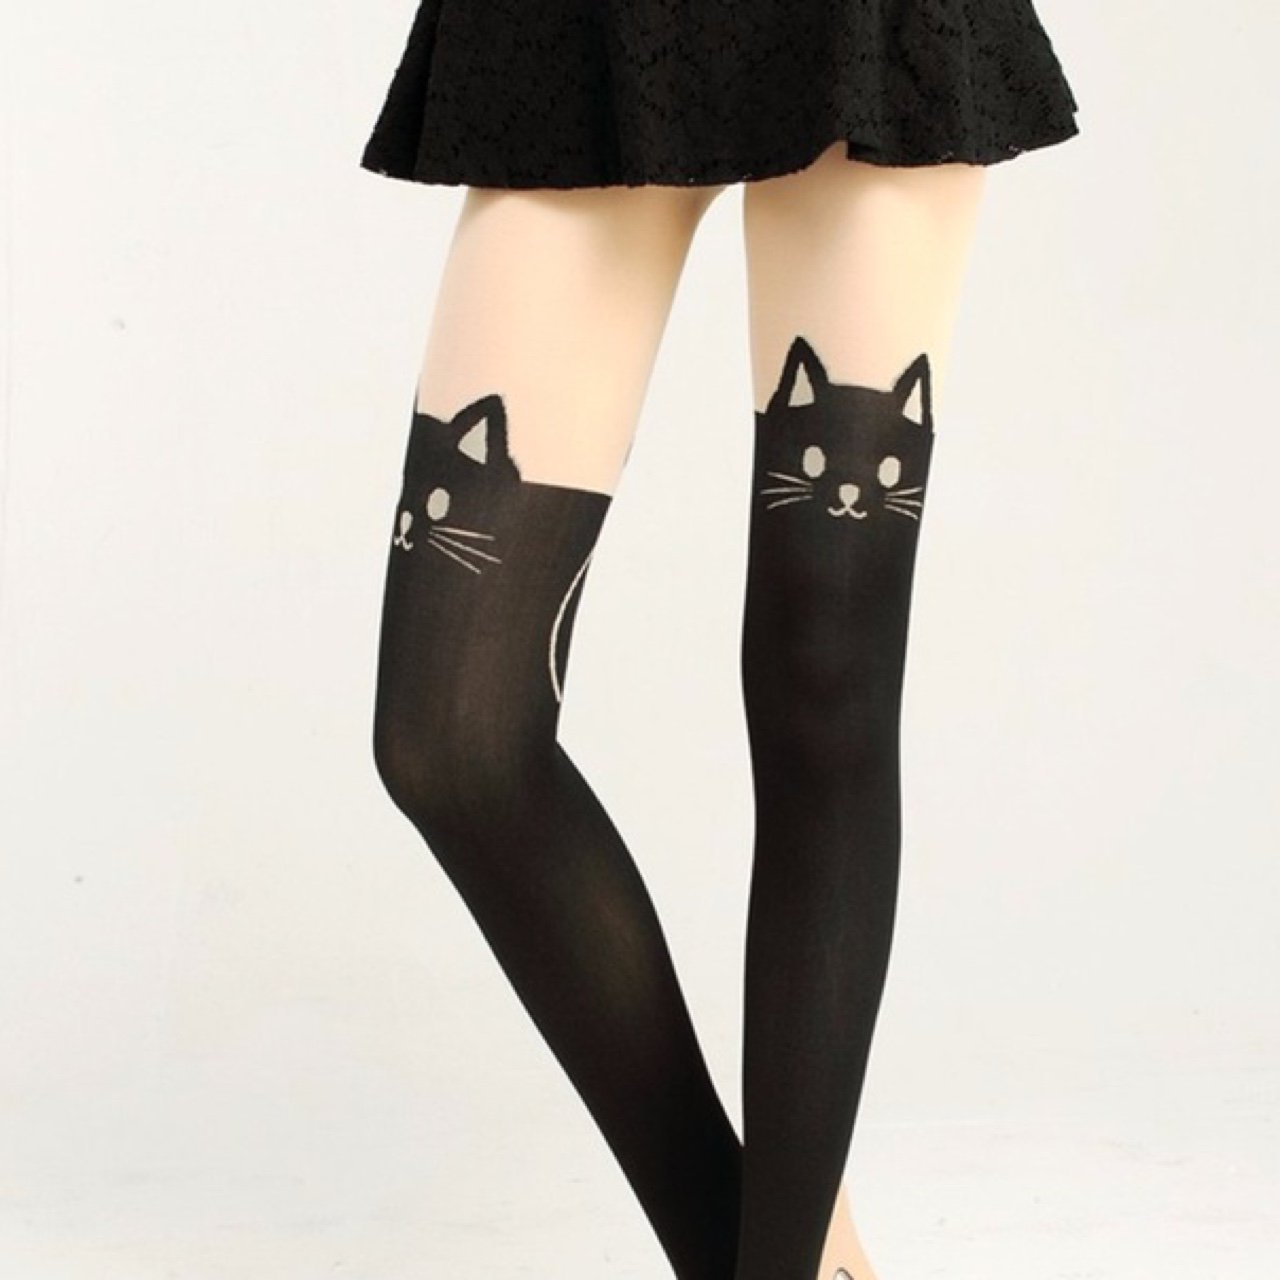 d70d5c875333f Nude / Black Cat Tights PRICE LOWERED Like faux over the Ft - Depop